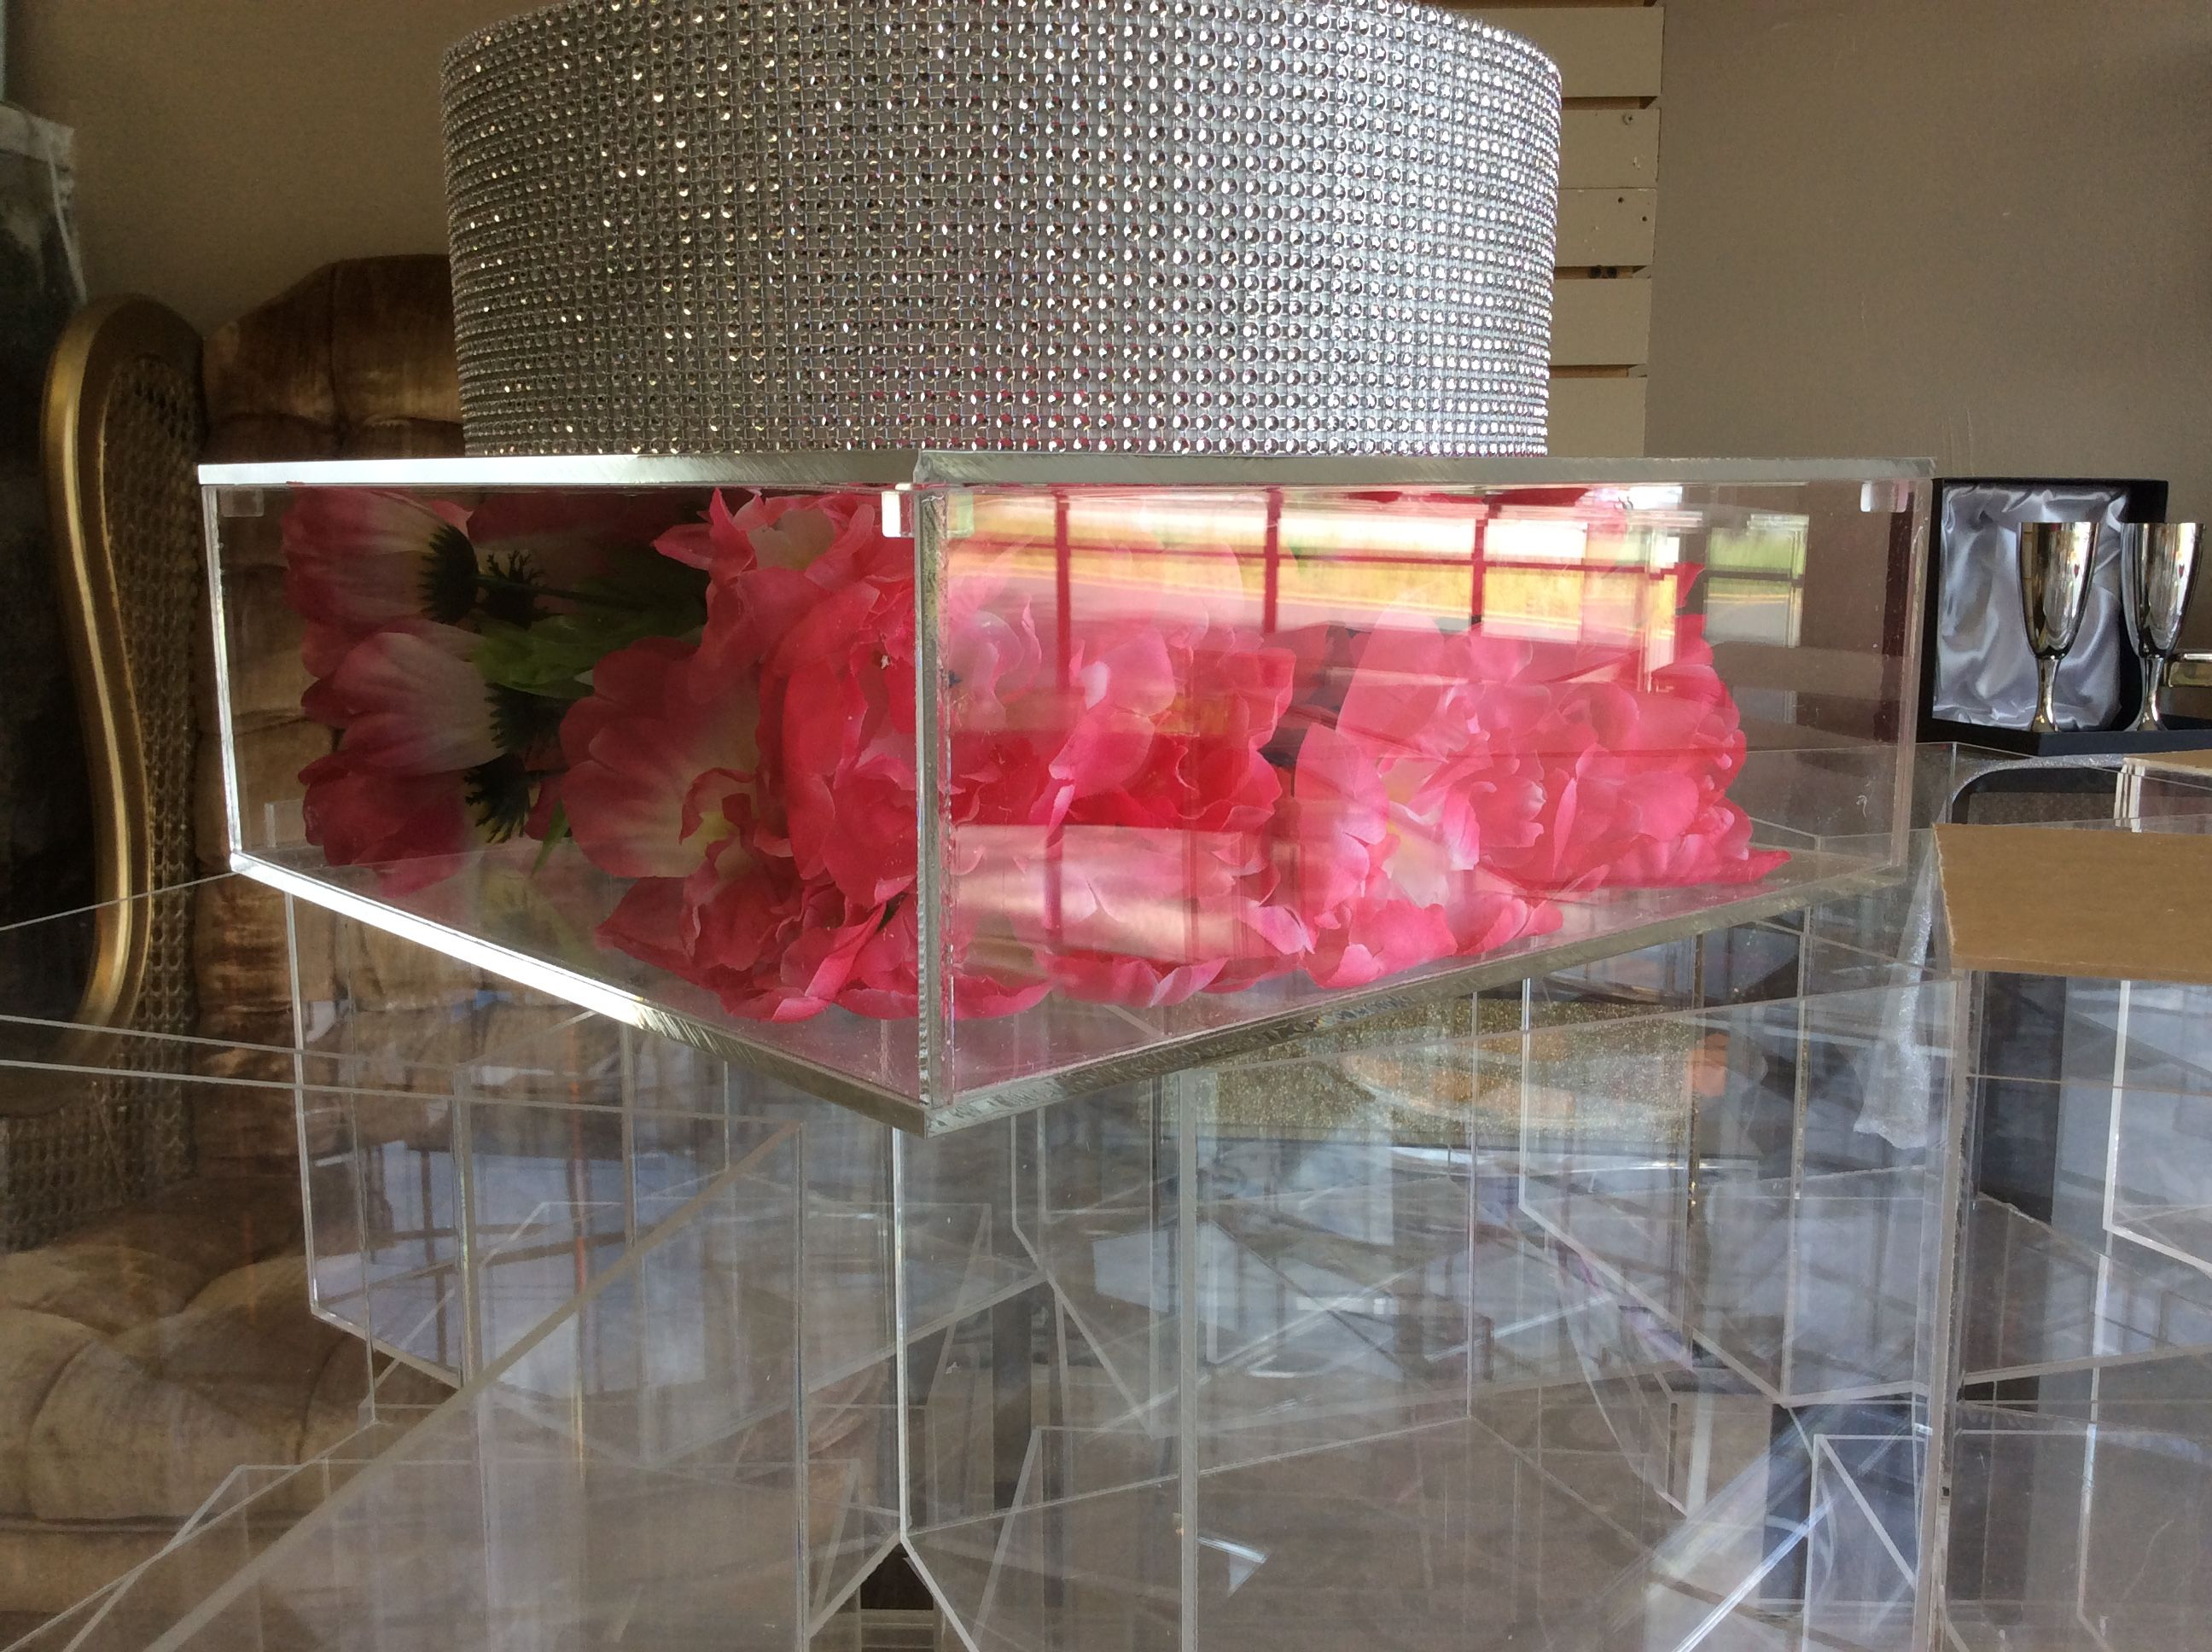 Buy A Handmade Clear Acrylic Cake Stand Box Removable Lids Lucite Custom Hand Made Made To